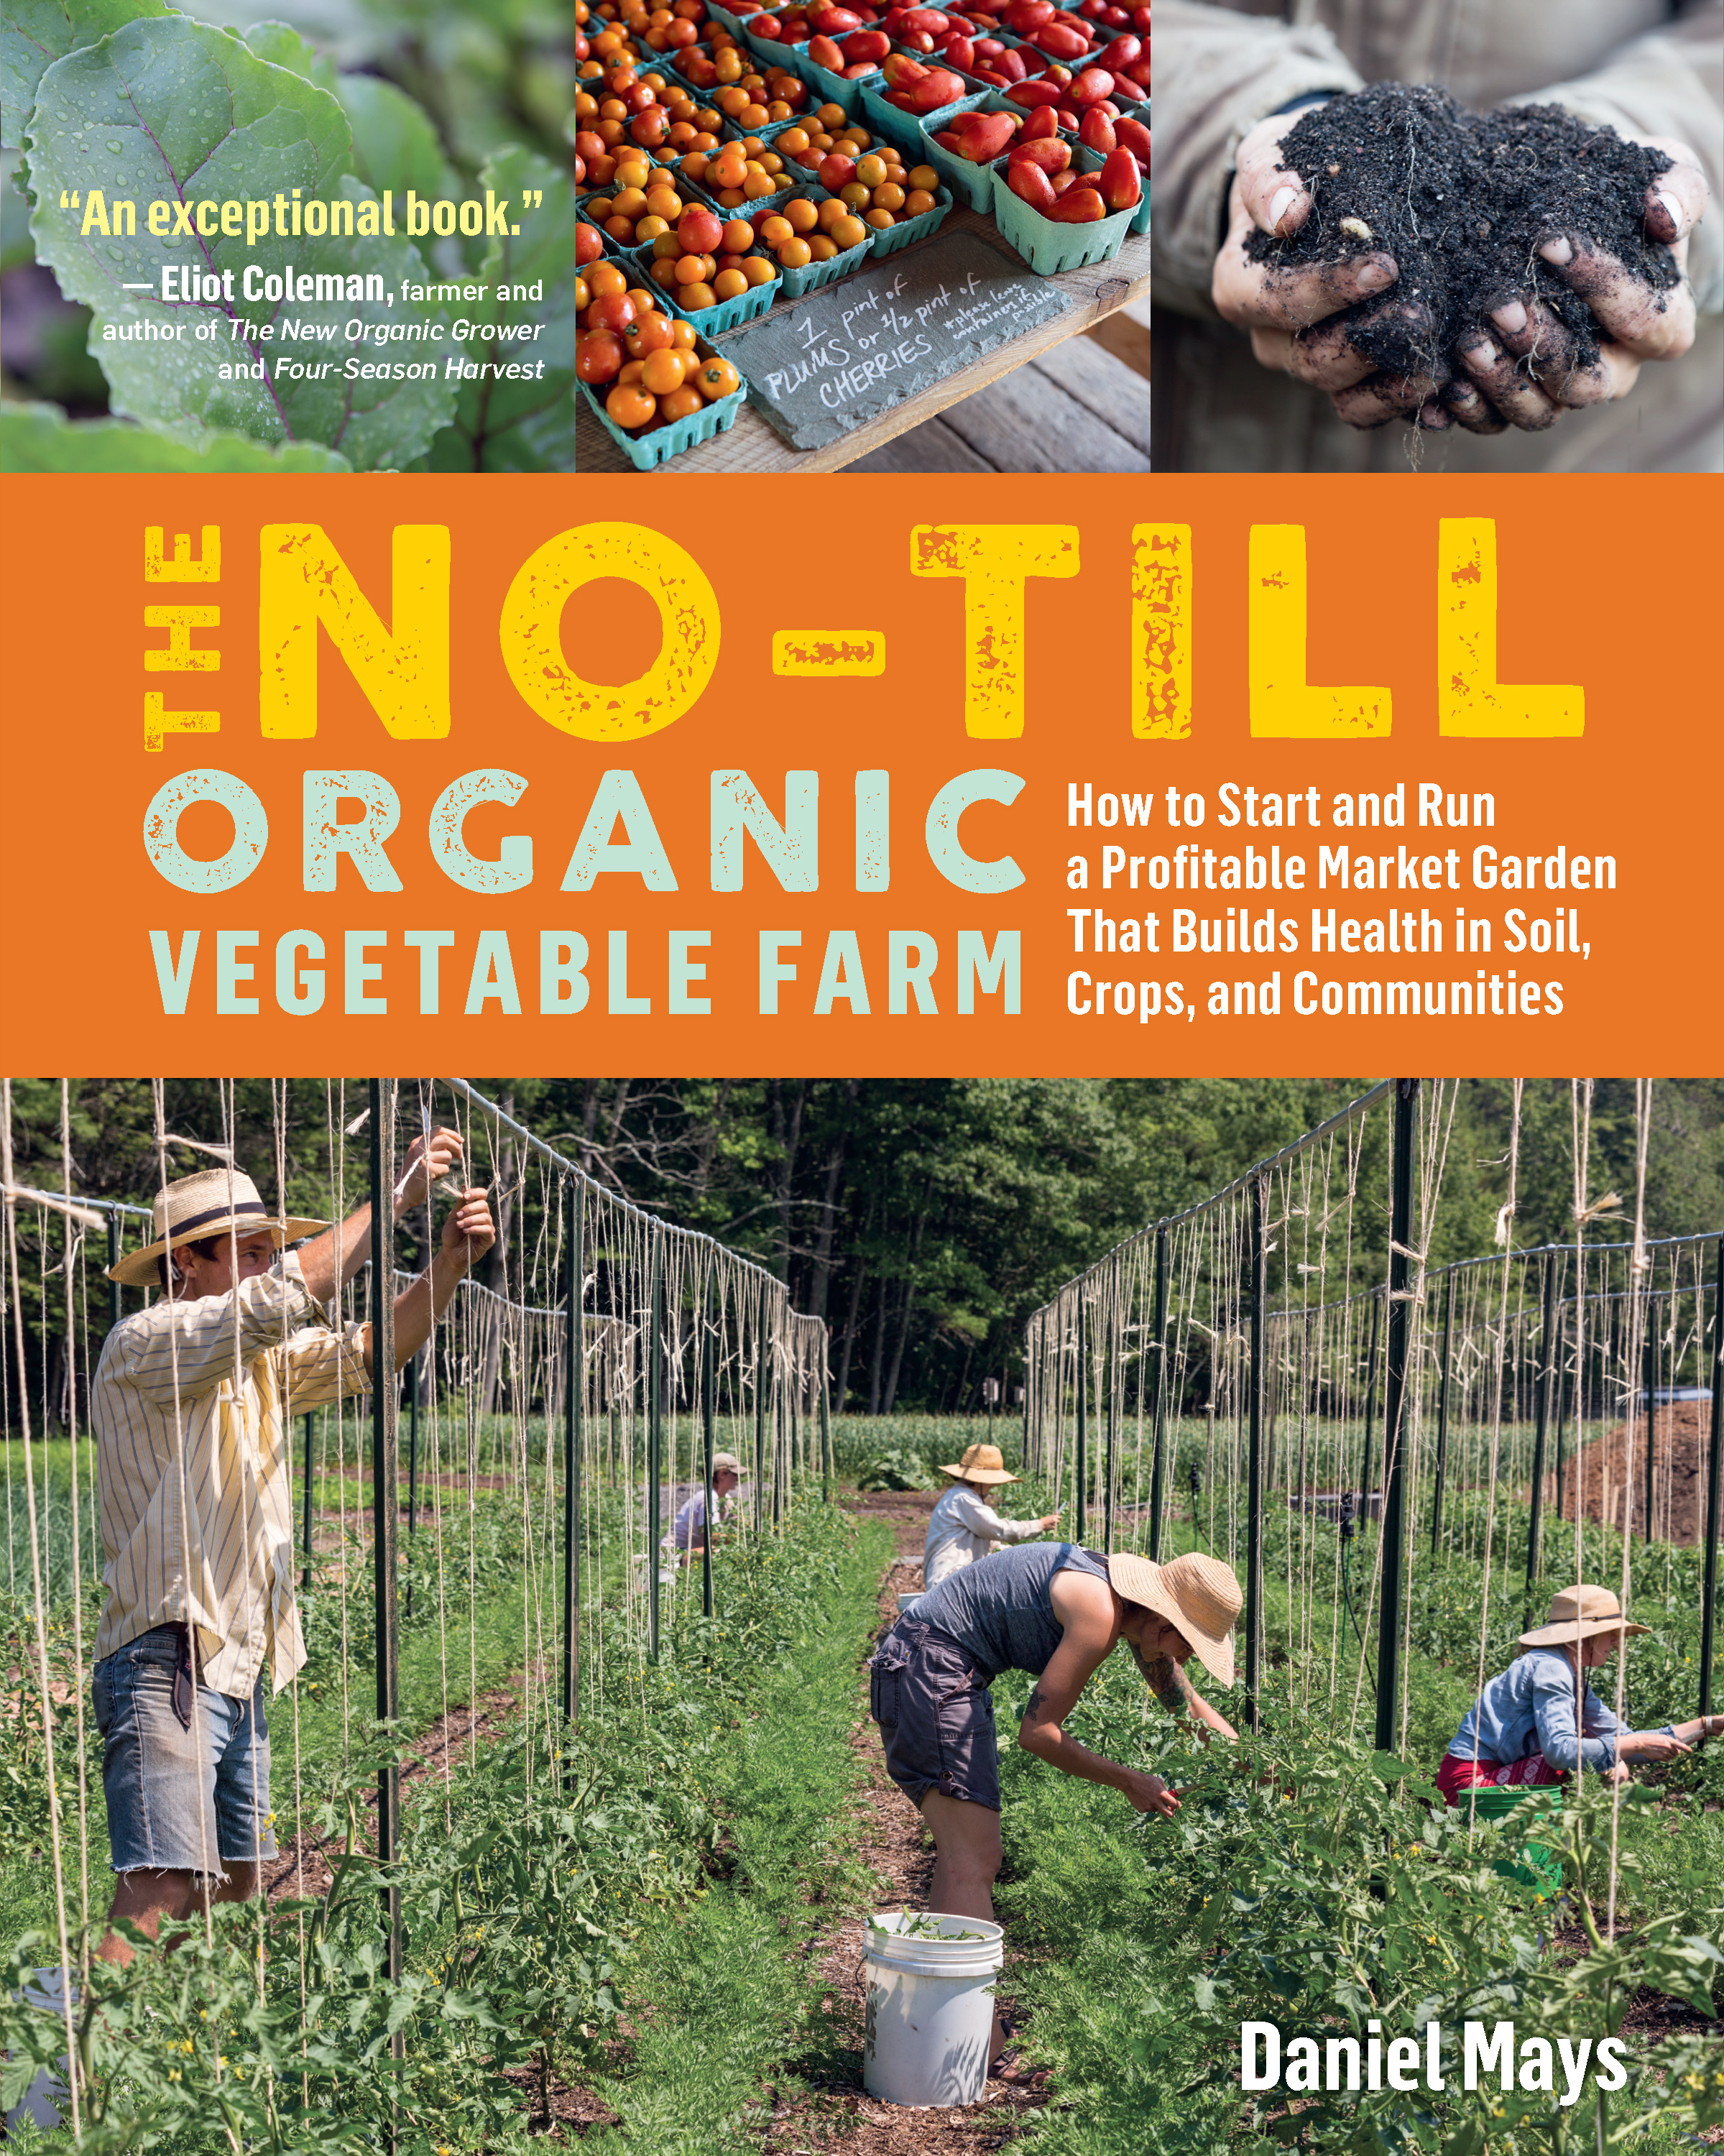 The No-Till Organic Vegetable Farm How to Start and Run a Profitable Market Garden That Builds Health in Soil, Crops, and Communities - Daniel Mays